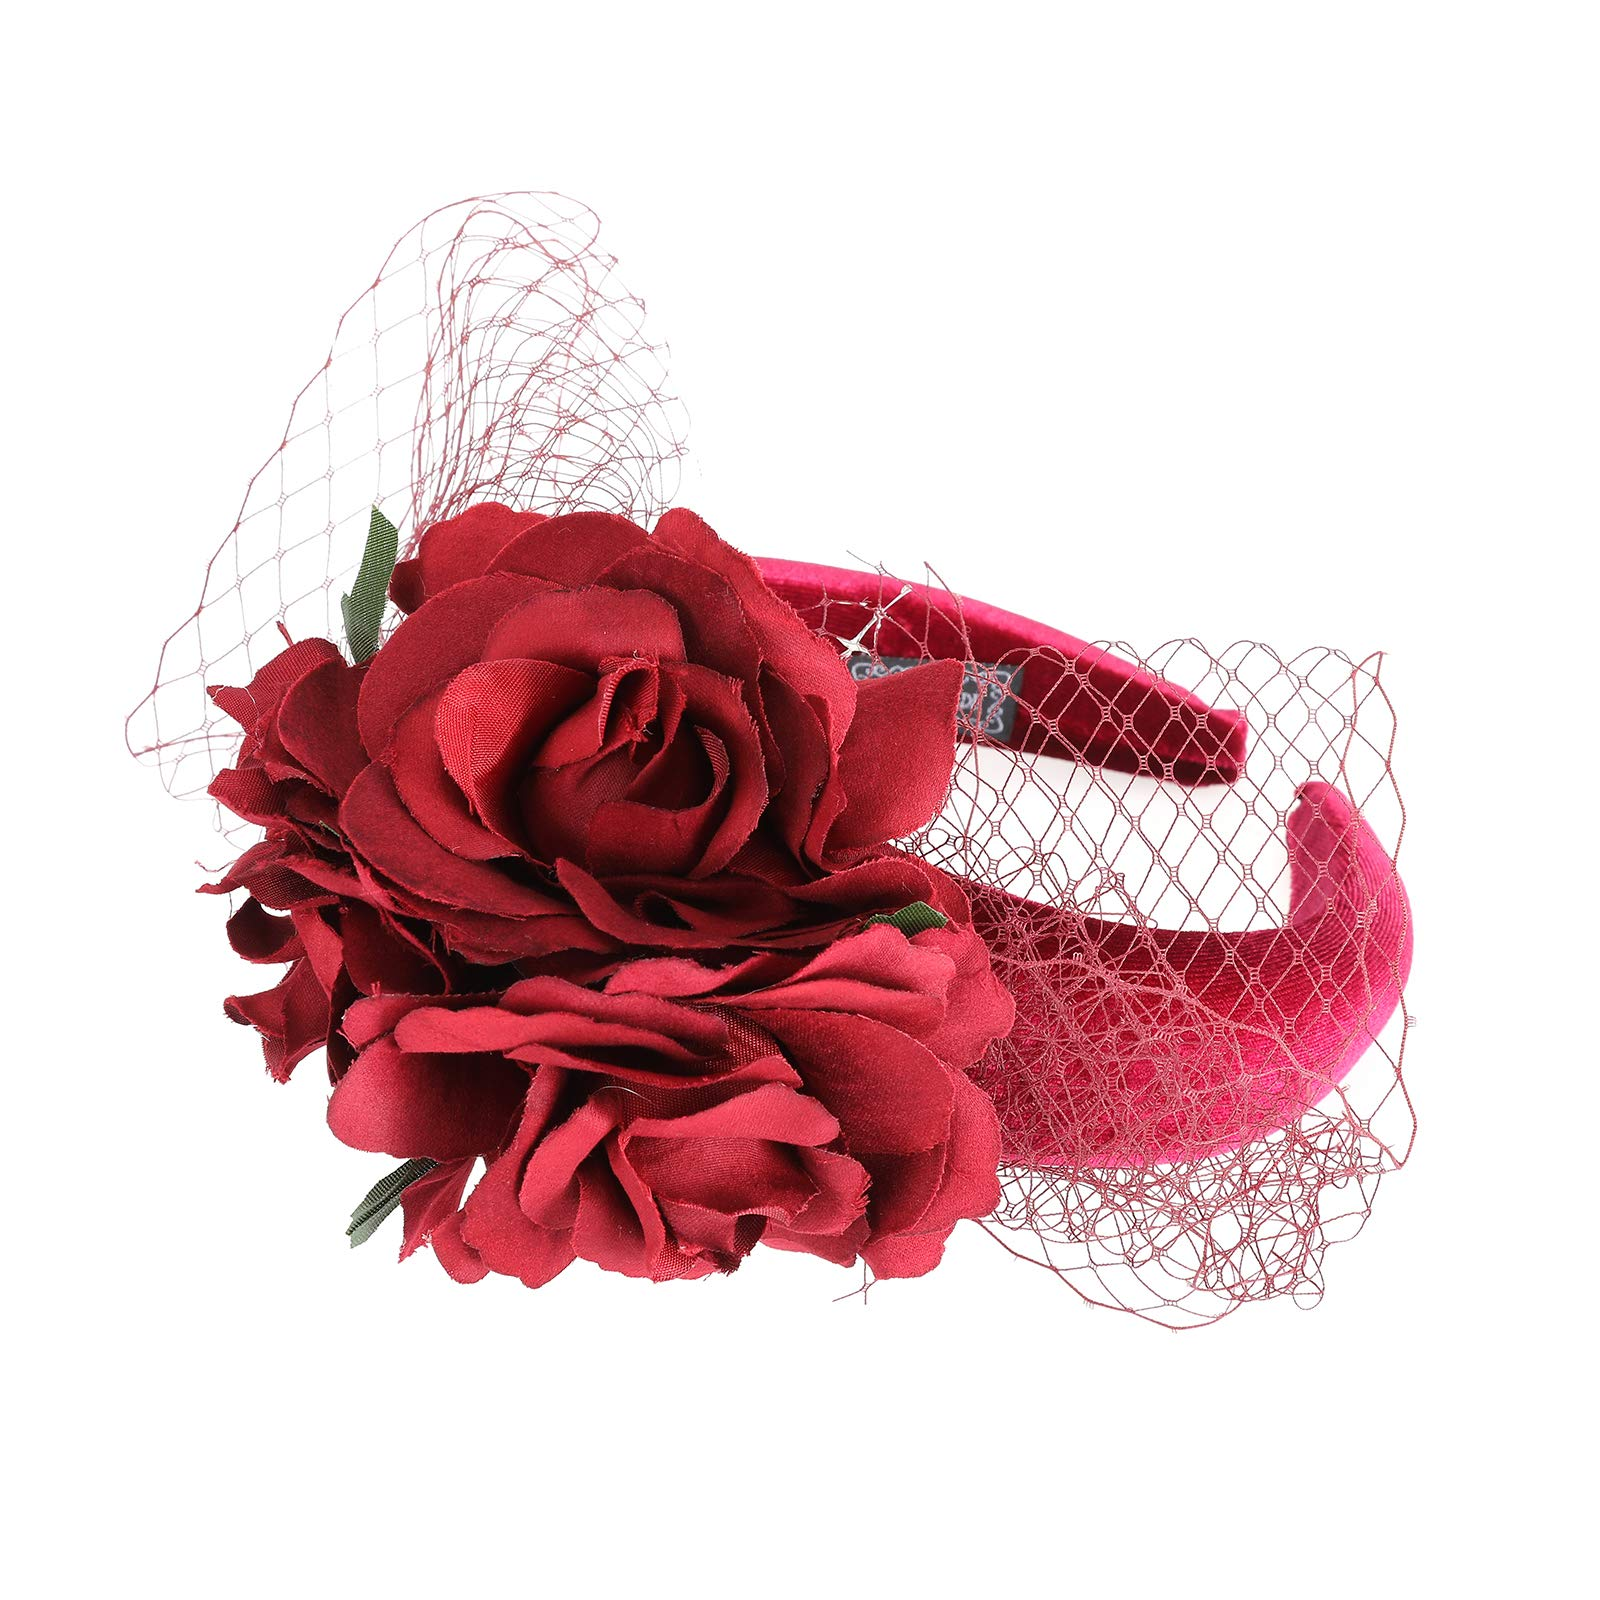 Fascinator Rose Flower Halloween Headband - Mysterious Day of the Dead Halloween Party Headband Hair Accessories for Women(Red-4)